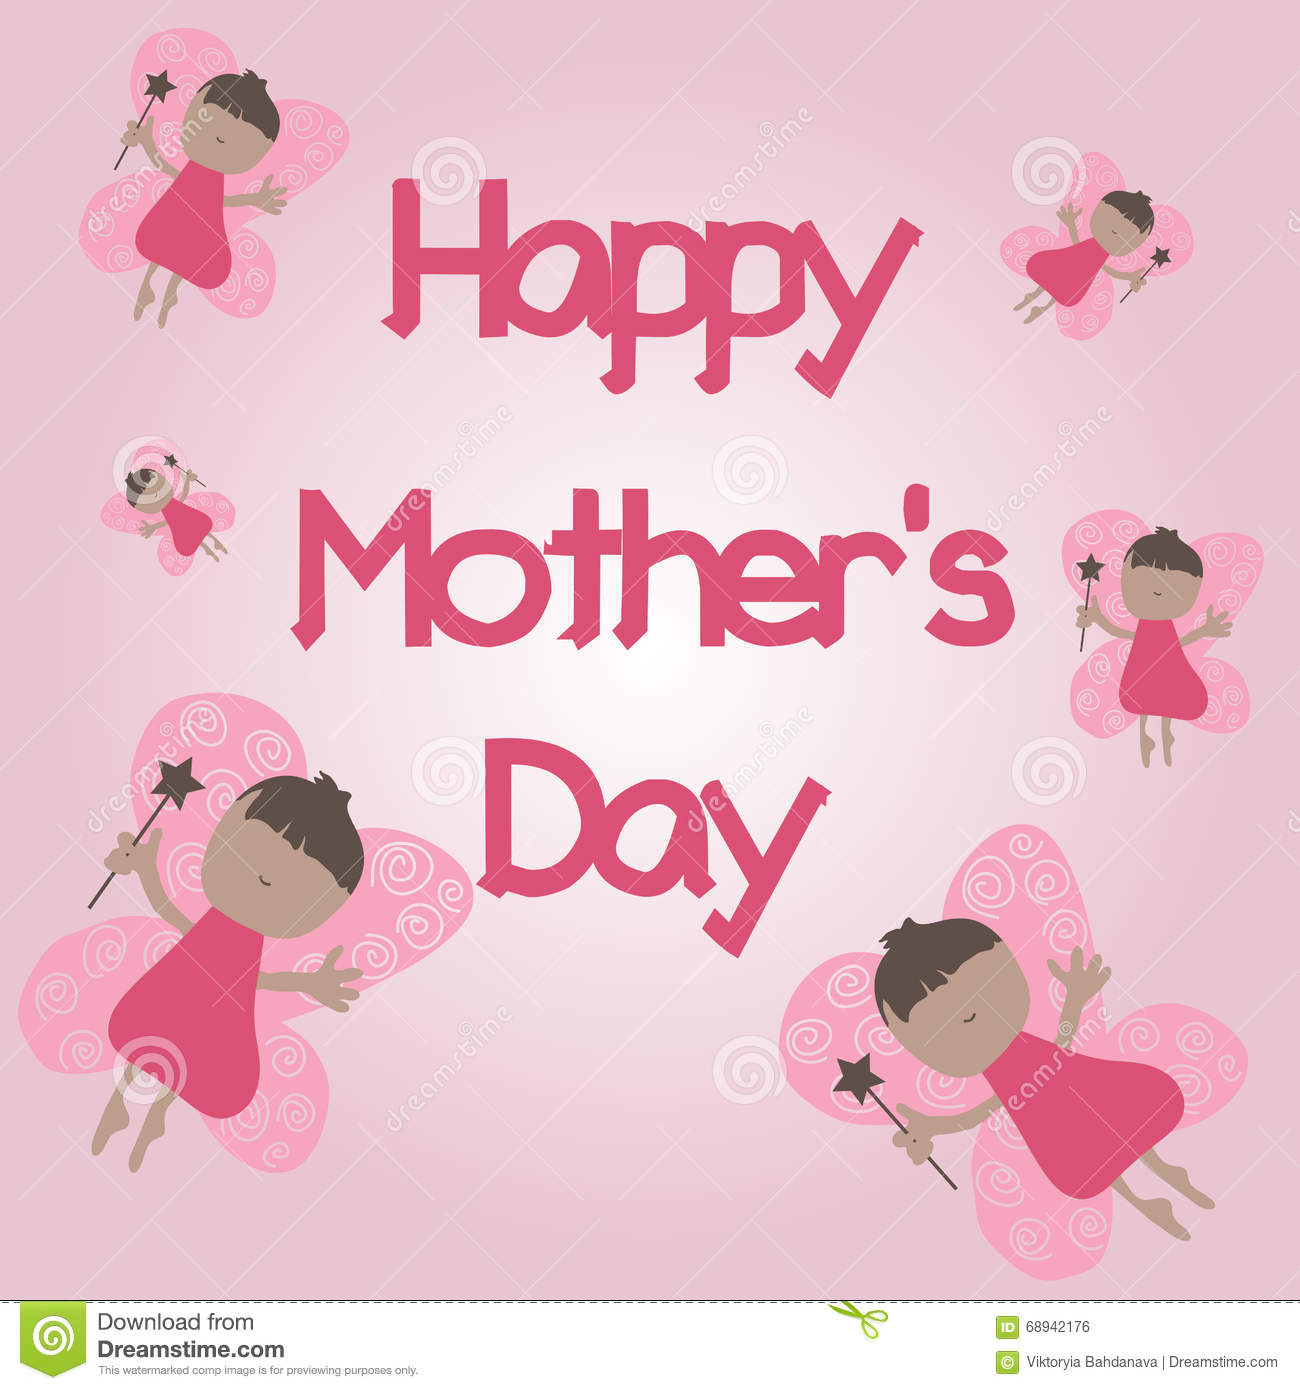 Happy mothers day selebrationthers day card stock illustration download happy mothers day selebrationthers day card stock illustration illustration of m4hsunfo